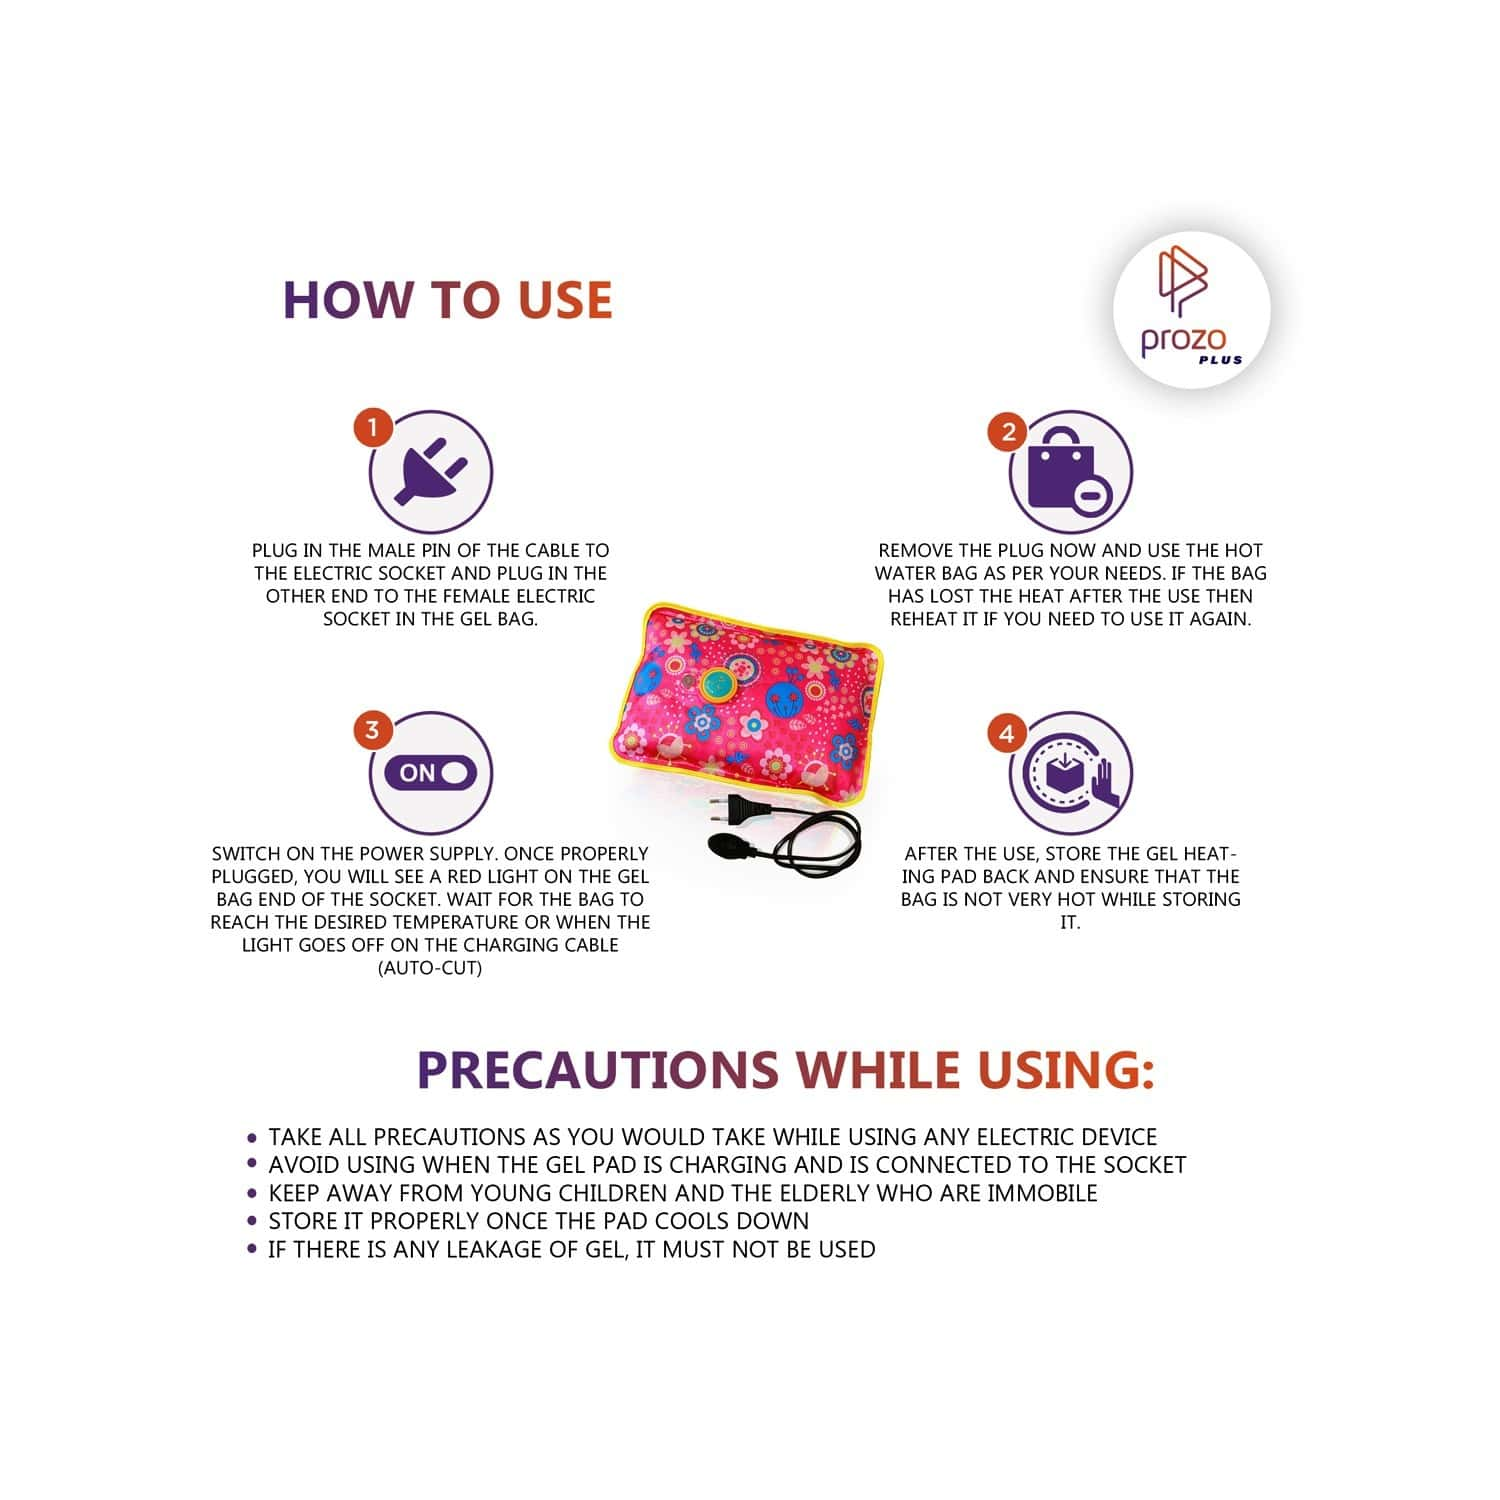 Prozo Plus Electric Heating Gel Pad Bag With An Auto-cut Feature (multicolour)